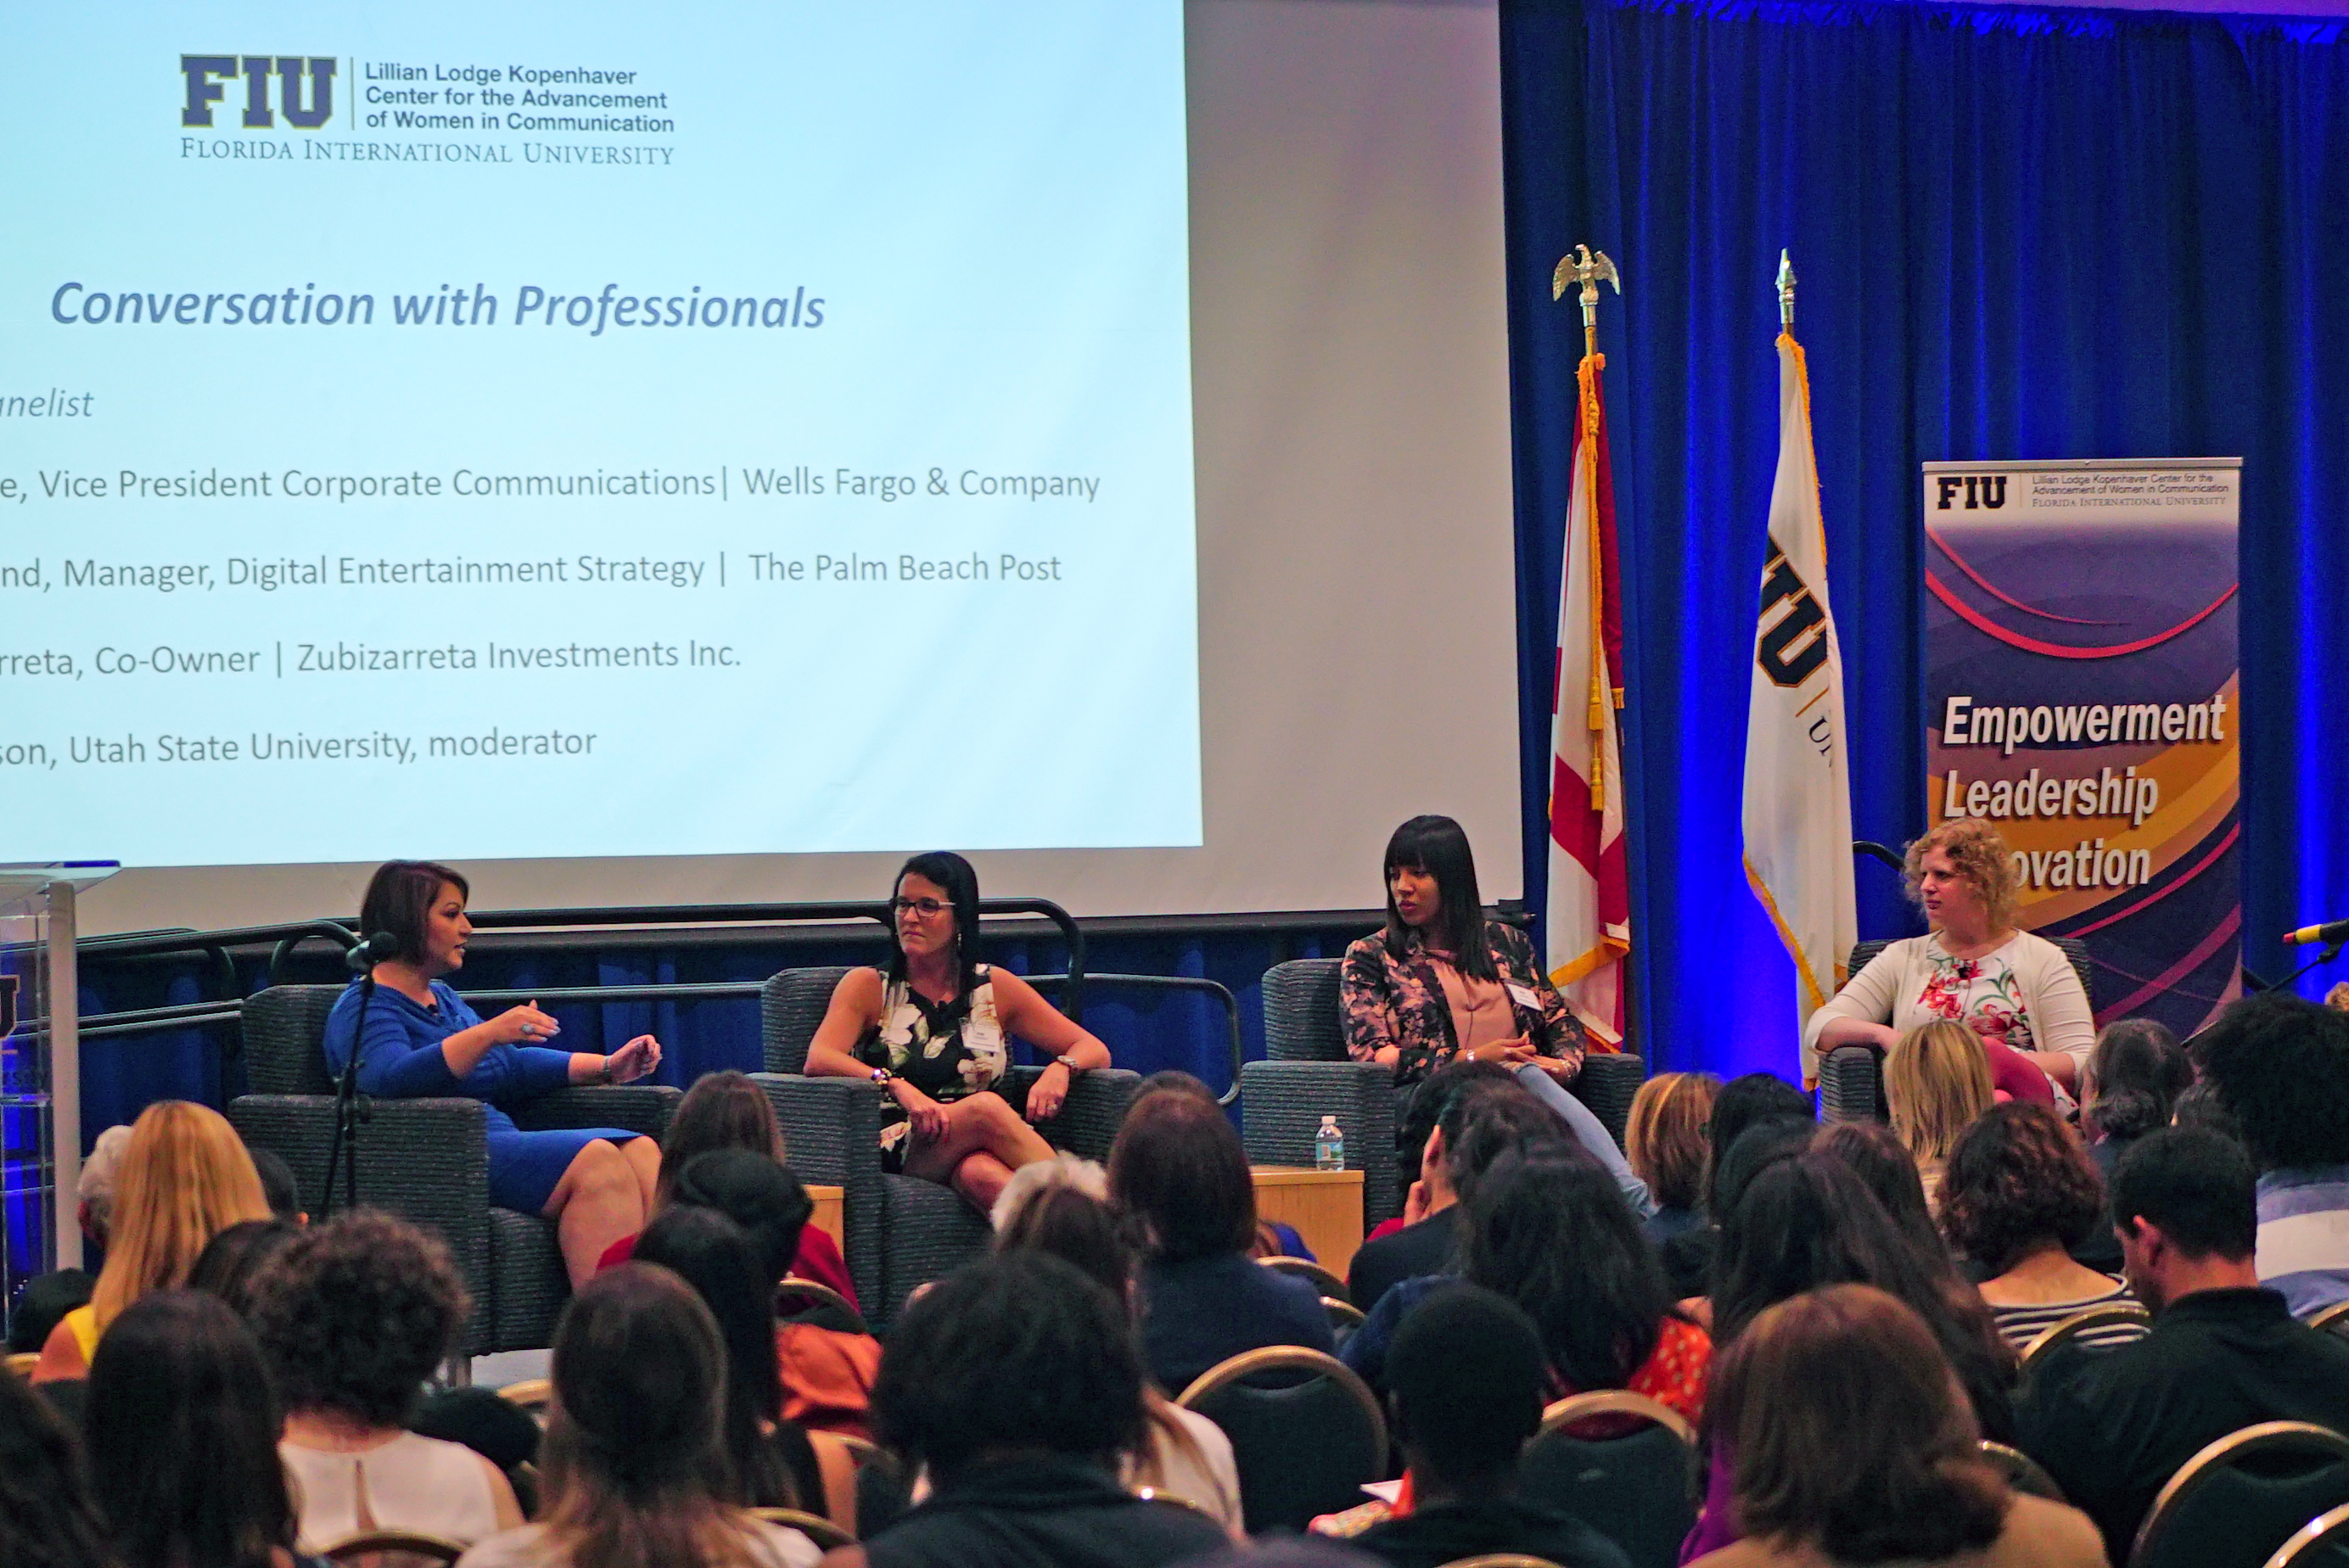 Women in communication discuss moving ahead at third annual national conference